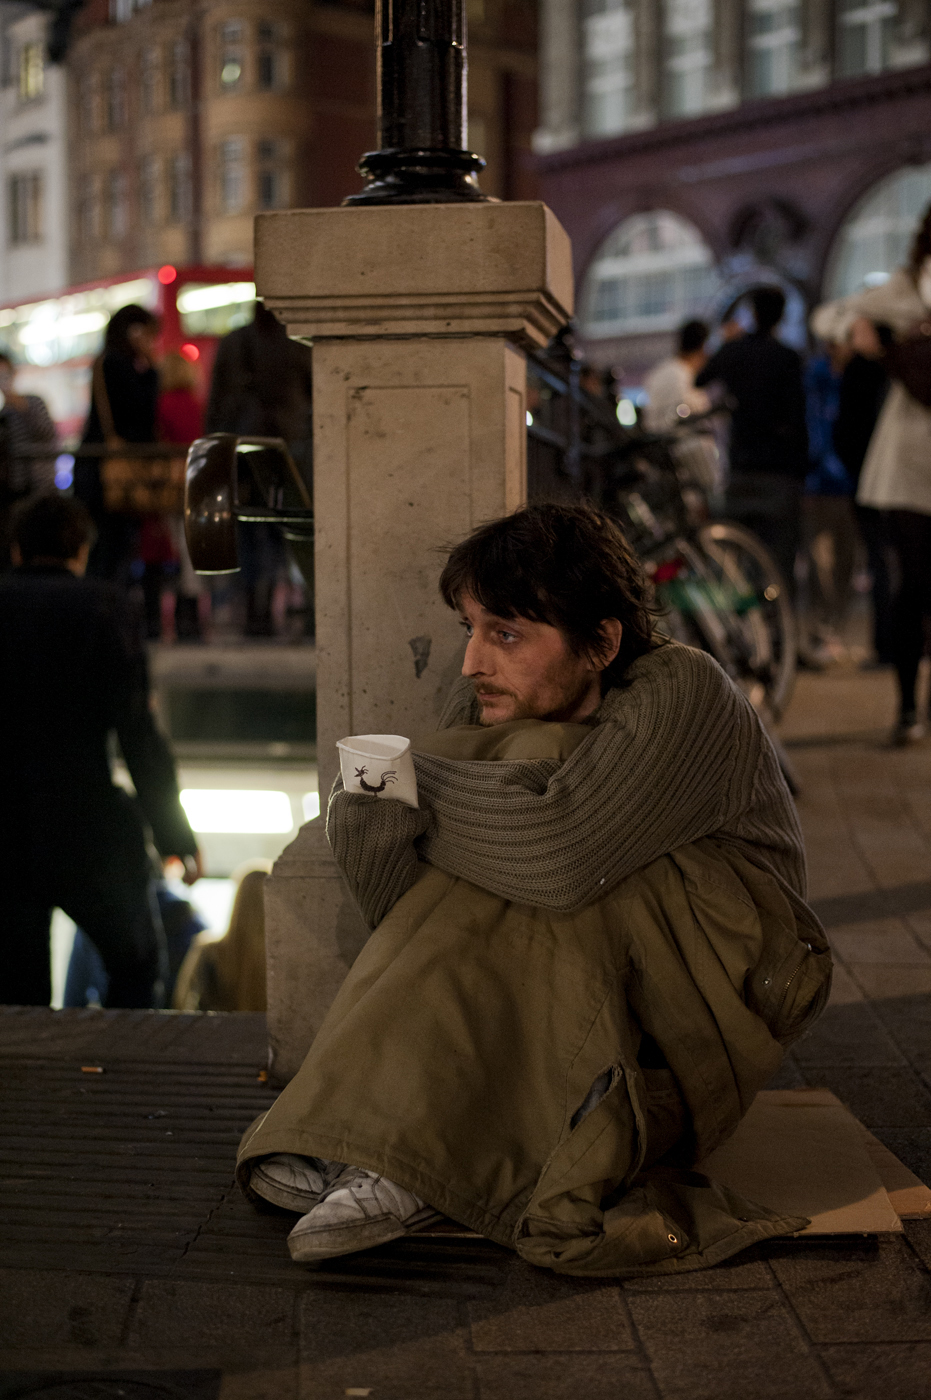 0004_5_homeless_london.jpg